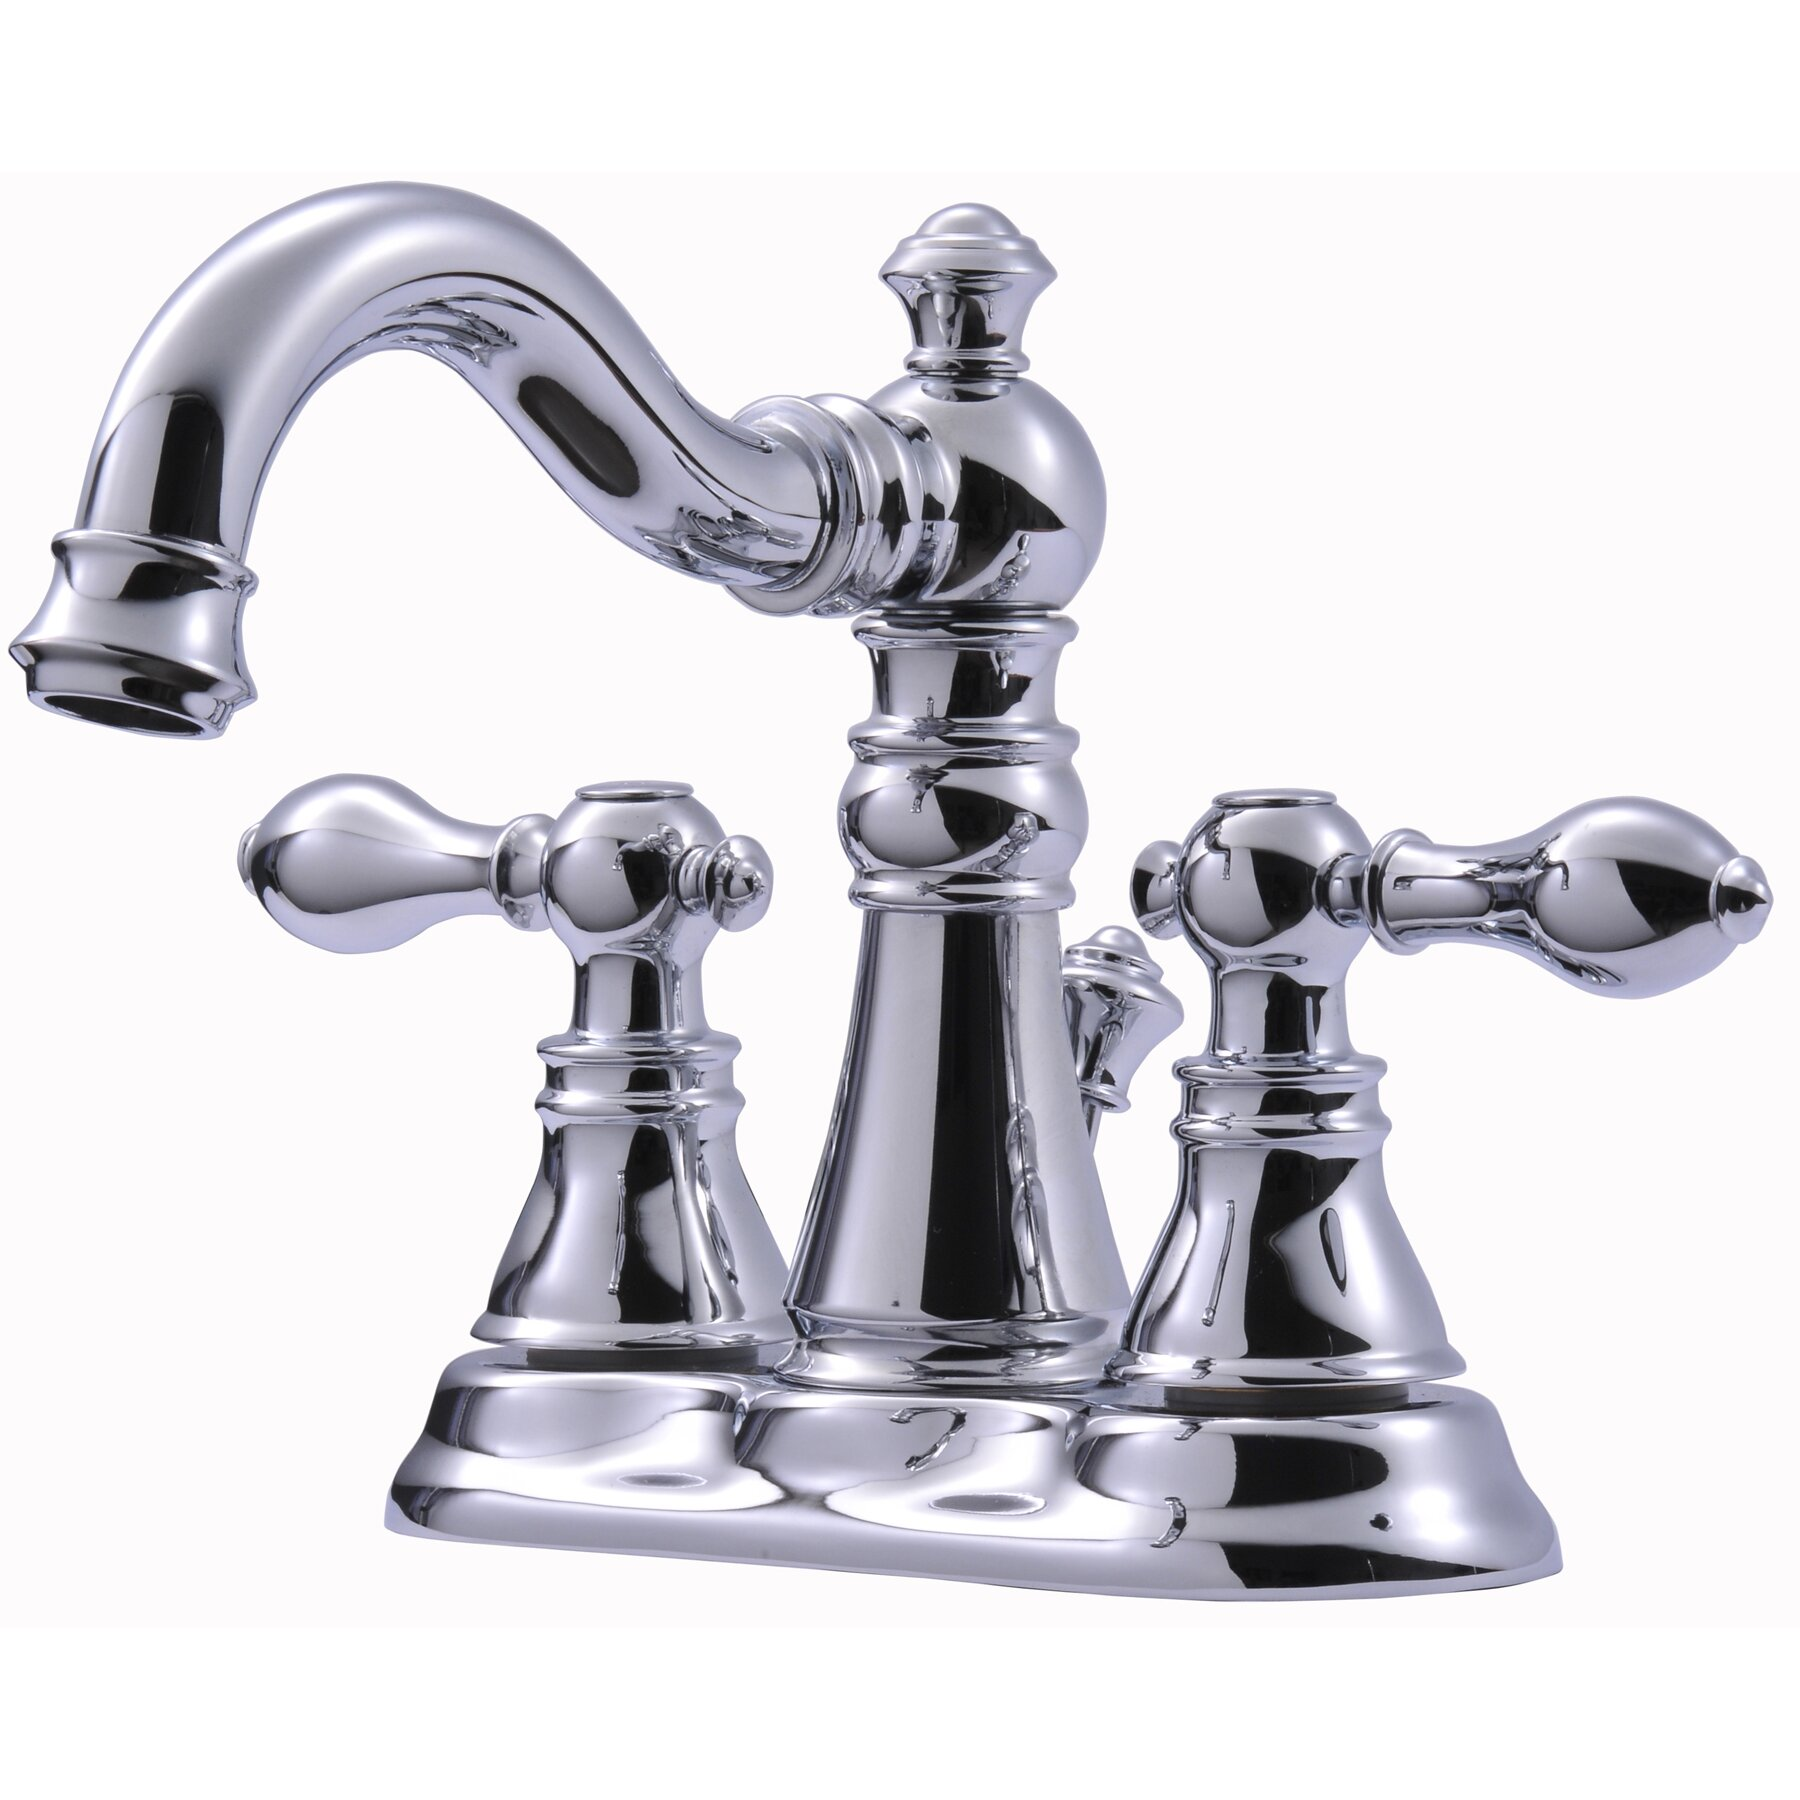 Model Victorian Centerset Bathroom Faucet  Bathroom Sink Faucets  Bathroom